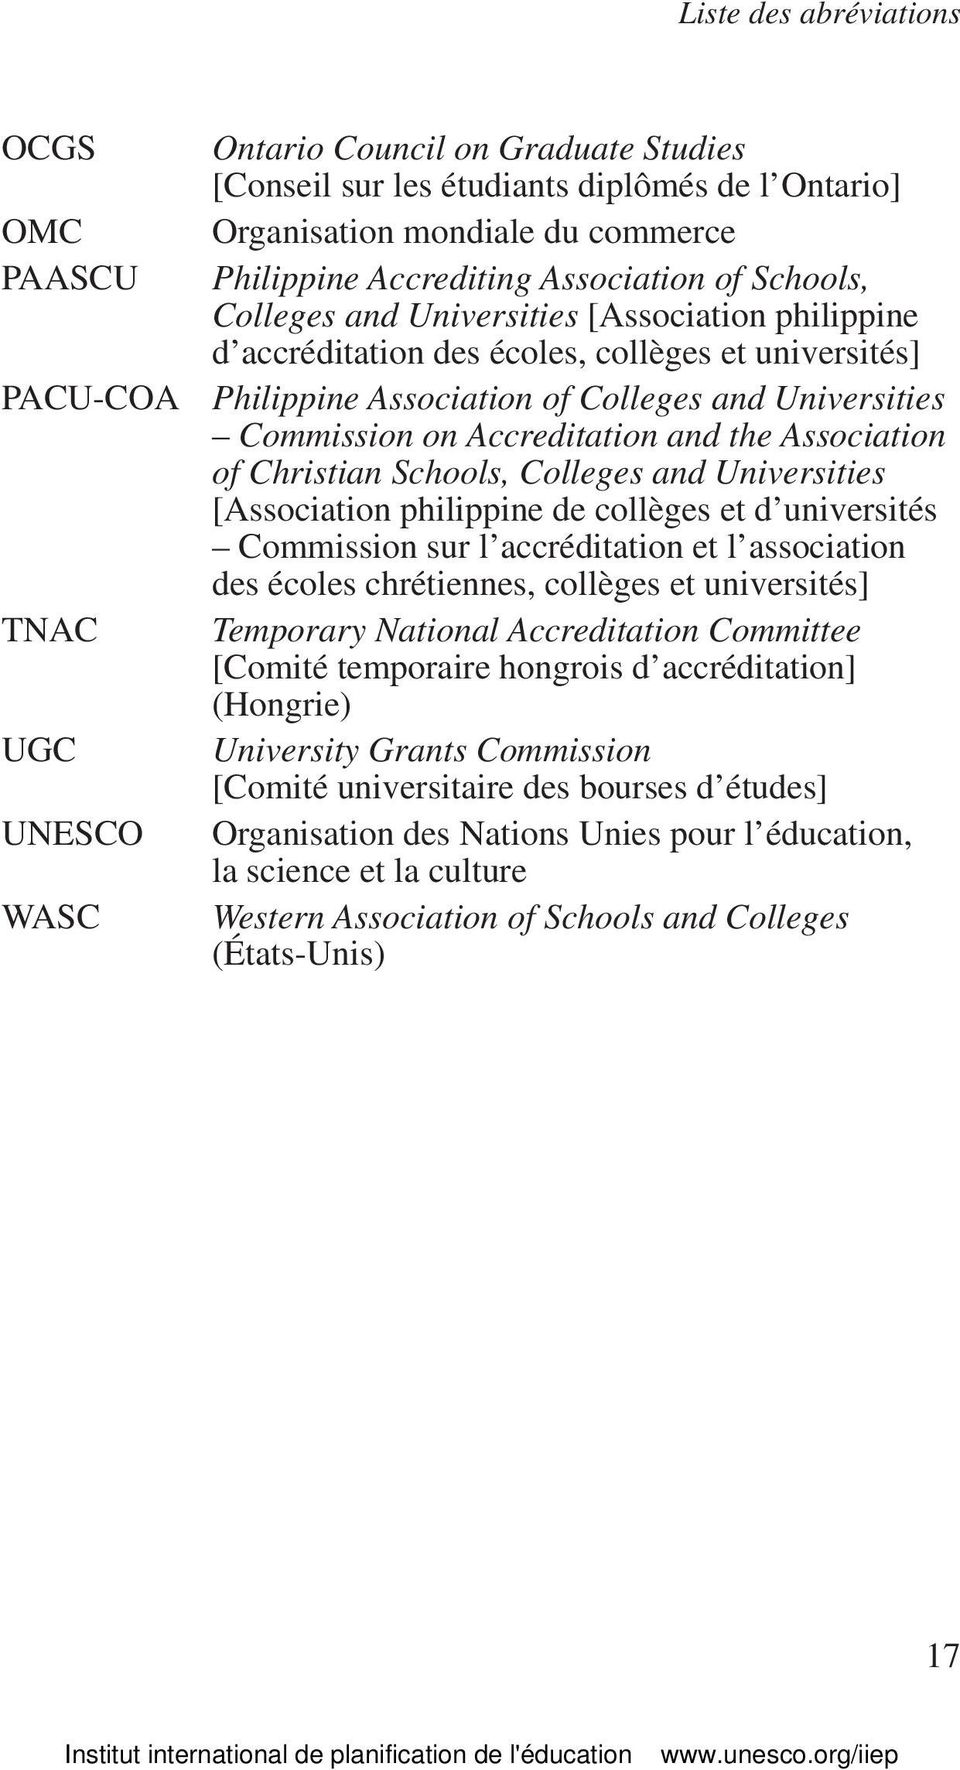 Accreditation and the Association of Christian Schools, Colleges and Universities [Association philippine de collèges et d universités Commission sur l accréditation et l association des écoles